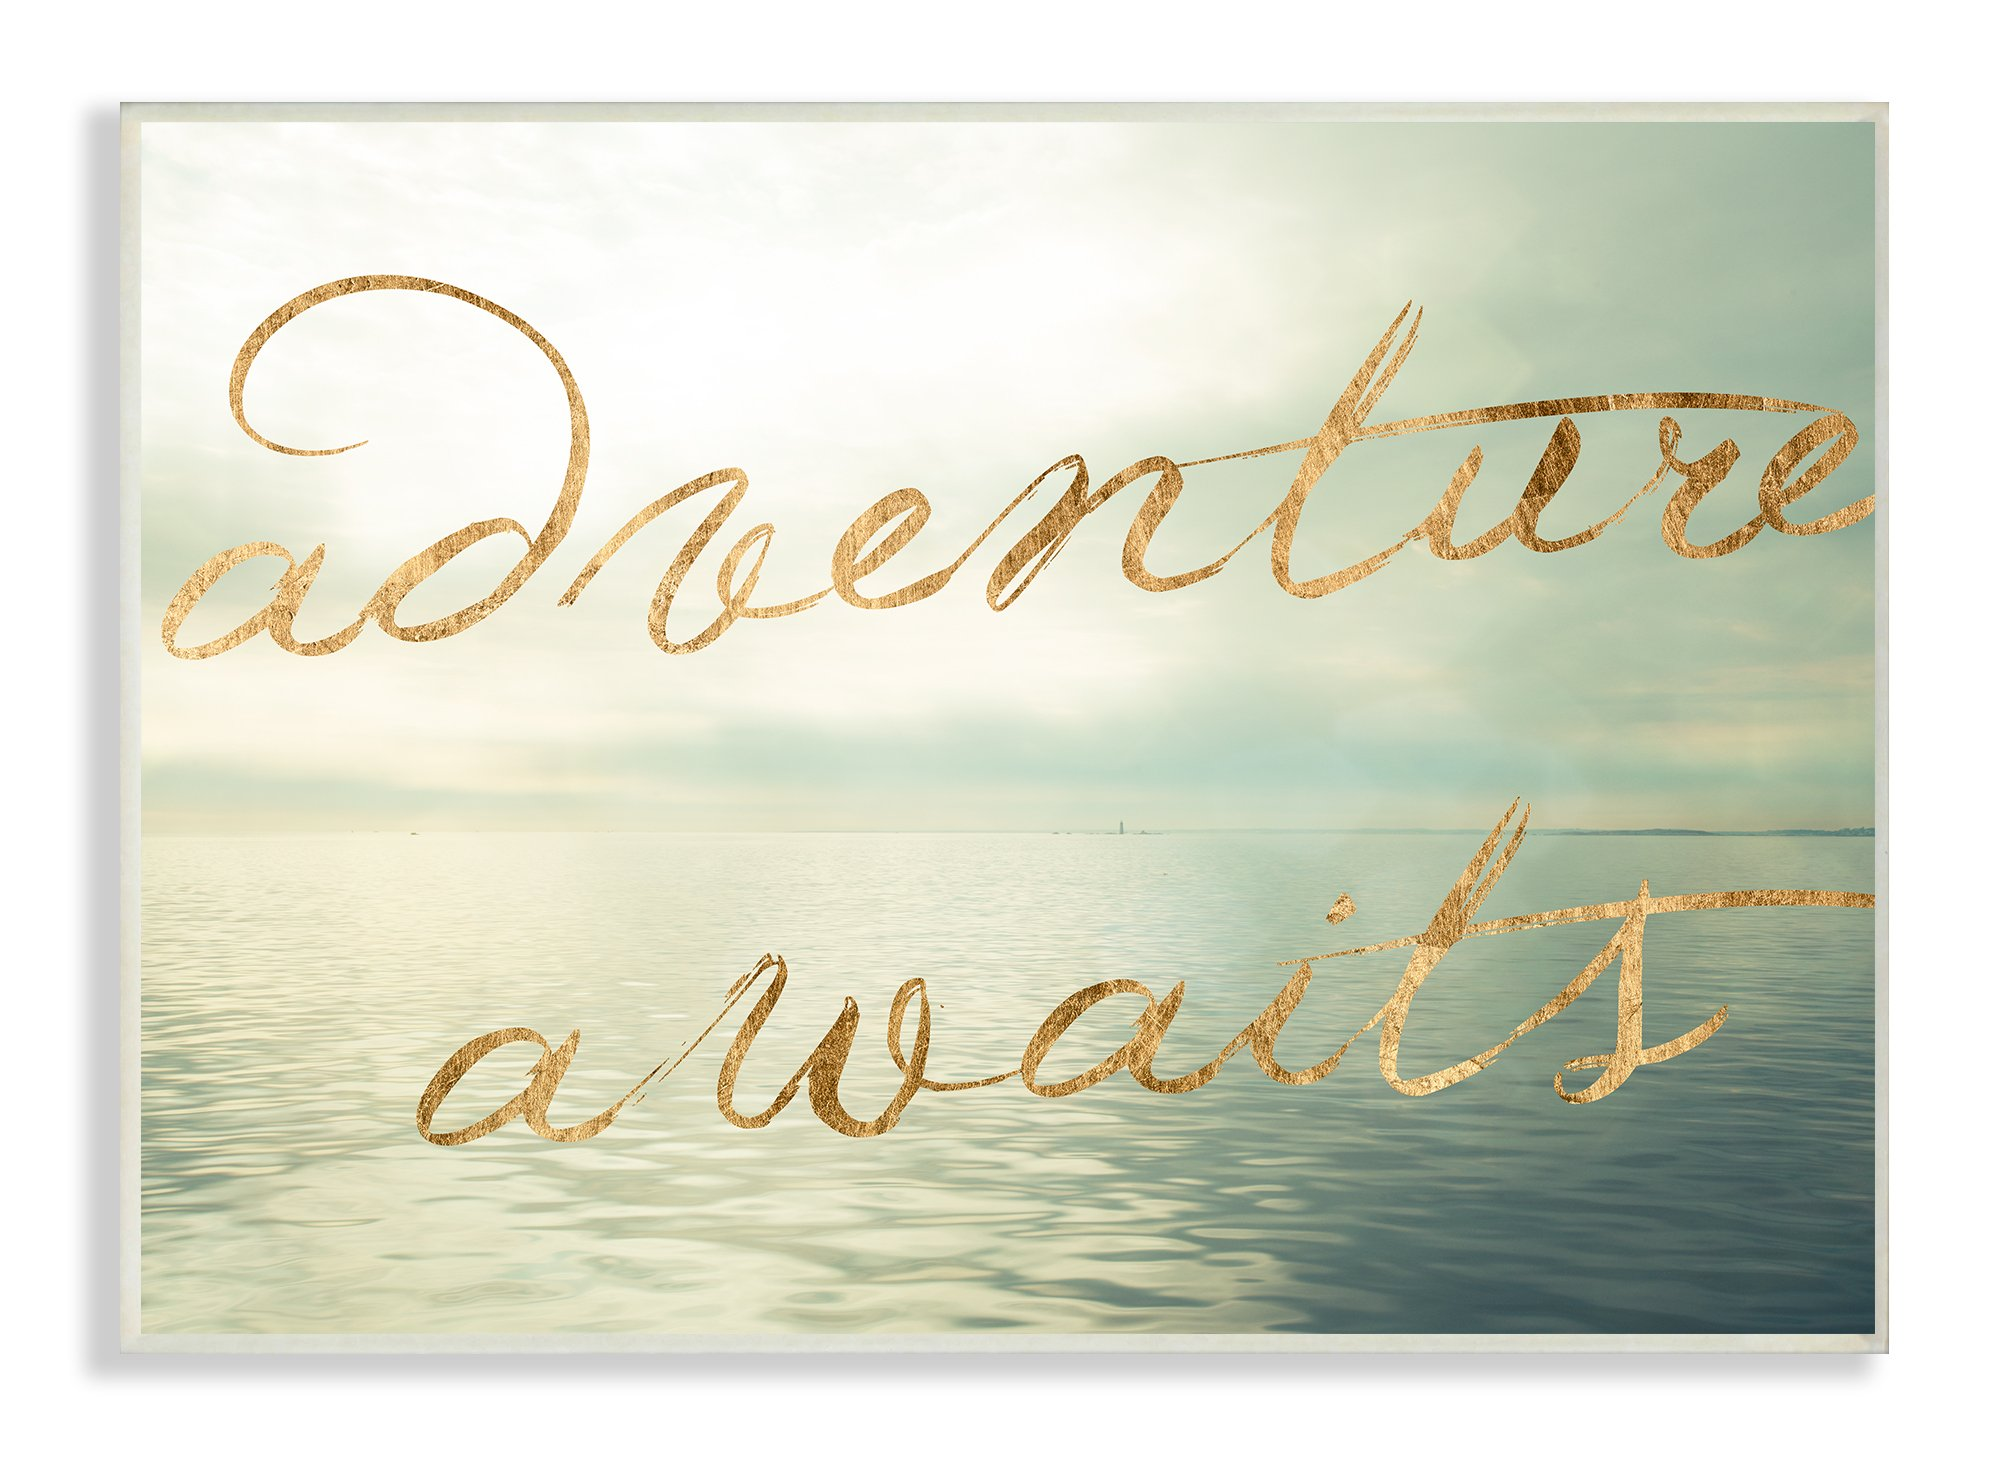 Stupell Home Décor Adventure Awaits Seascape Wall Plaque Art, 10 x 0.5 x 15, Proudly Made in USA